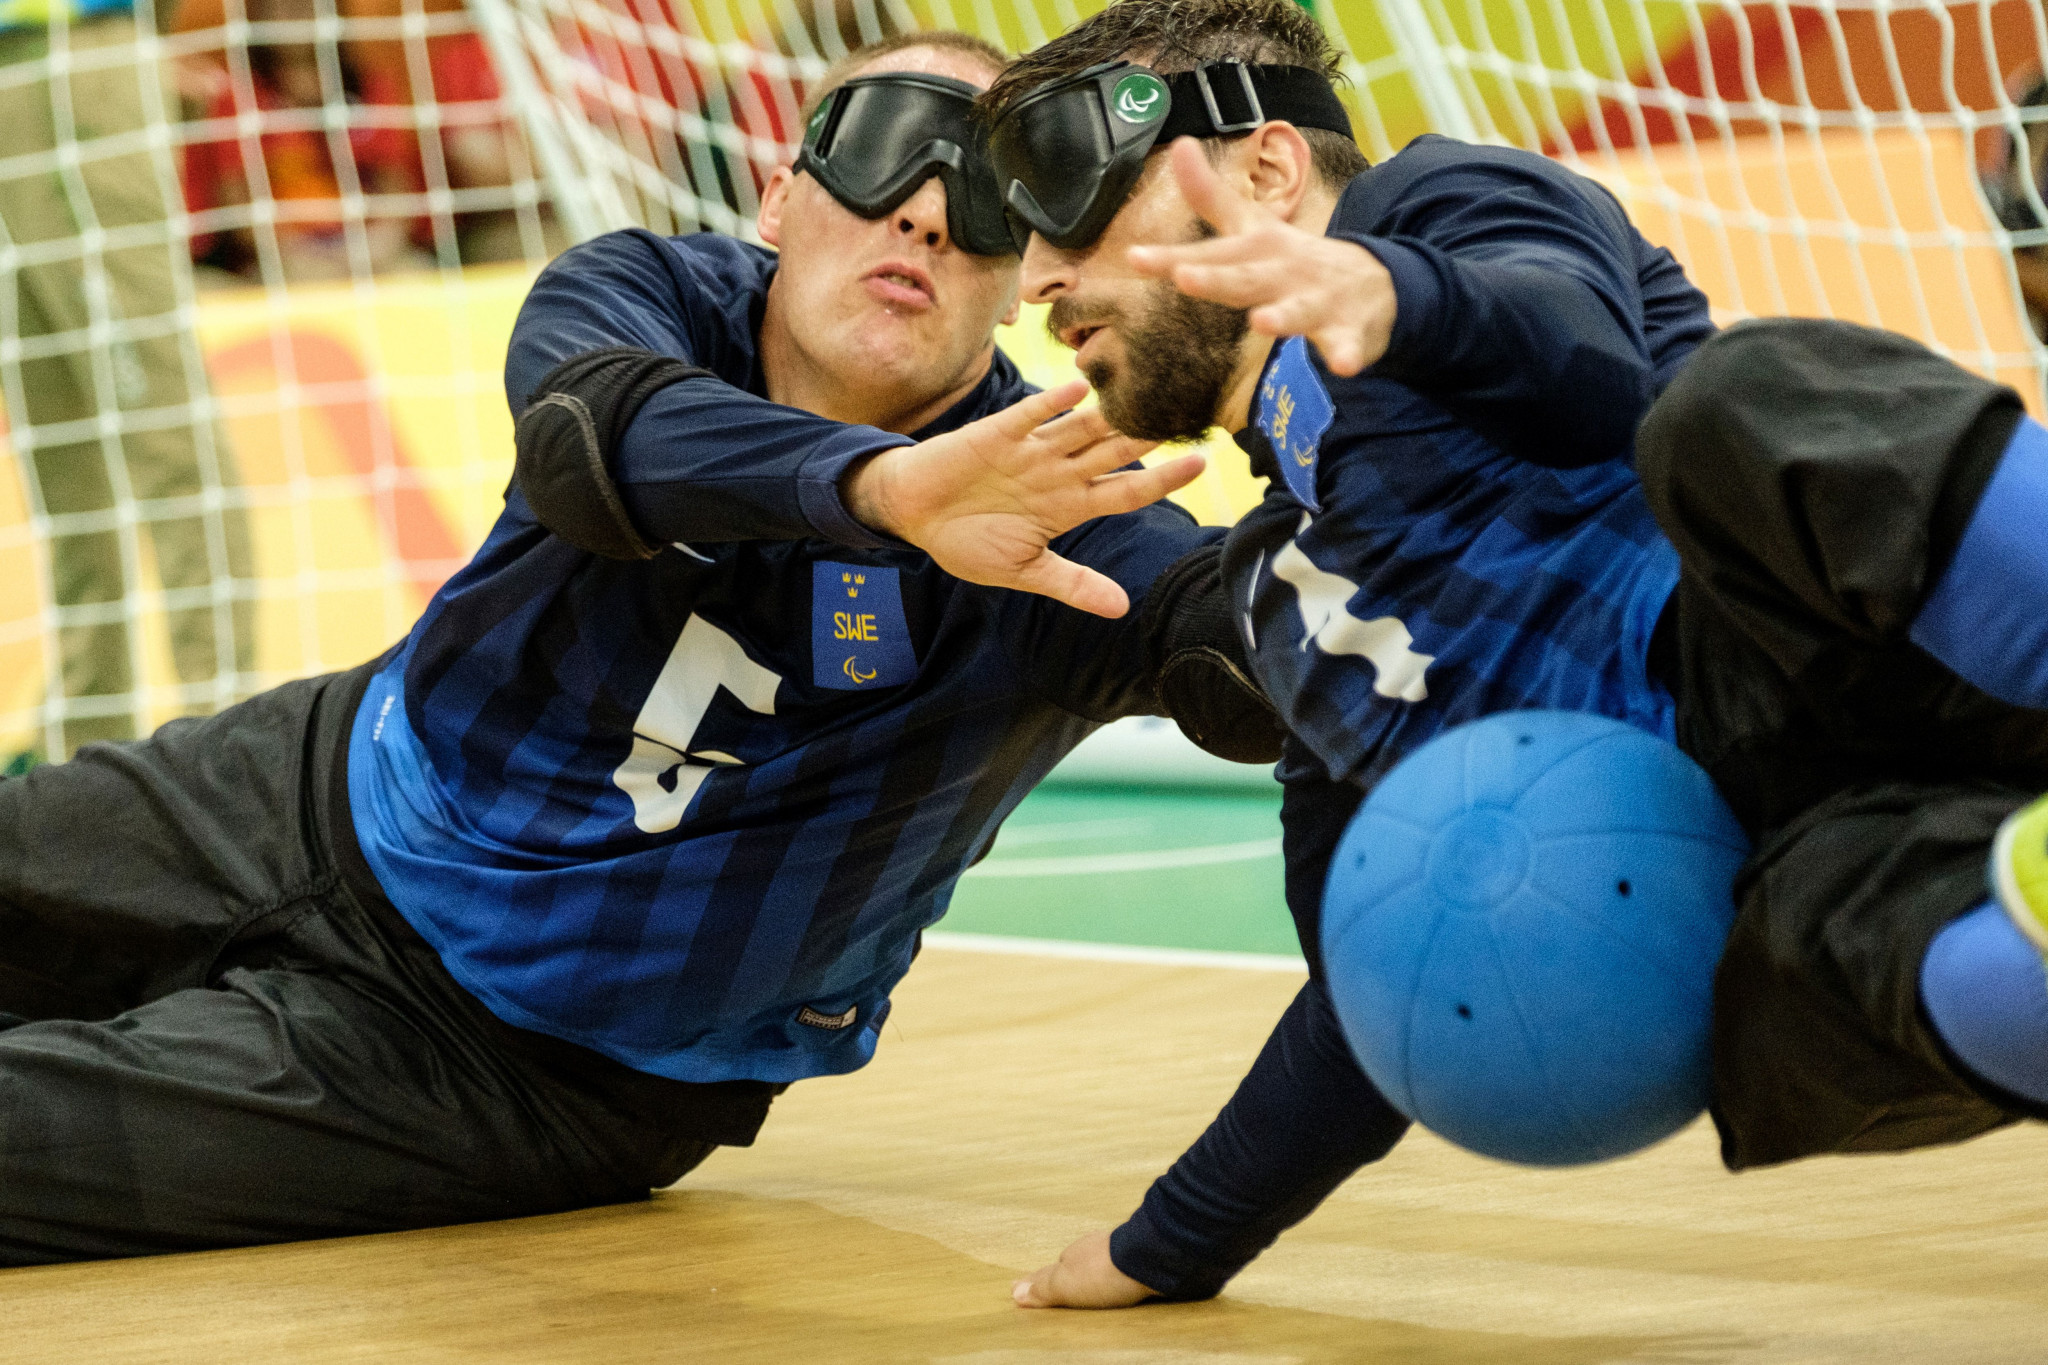 The IBSA are looking for hosts for several goalball tournaments ©Getty Images